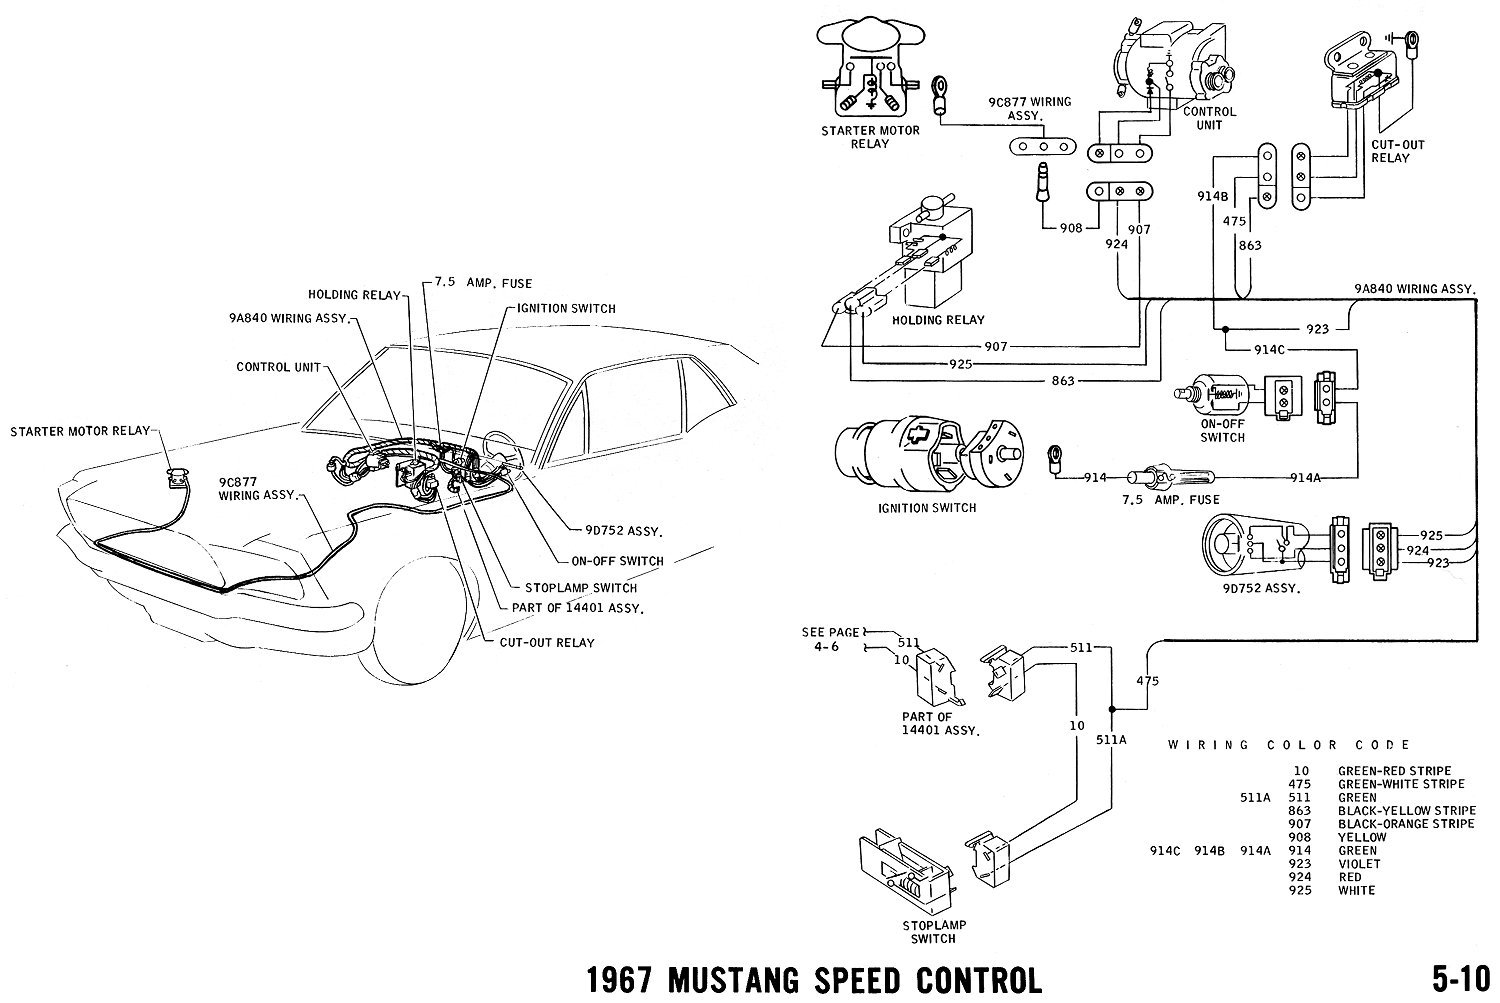 67 Mustang Under Dash Wiring Harness likewise Headlight Wiring Diagram For A 1965 Corvette also 1964 Chevrolet Nova Wiring Diagram together with 56 20Chevy 20index besides  on 1962 chevy bel air 409